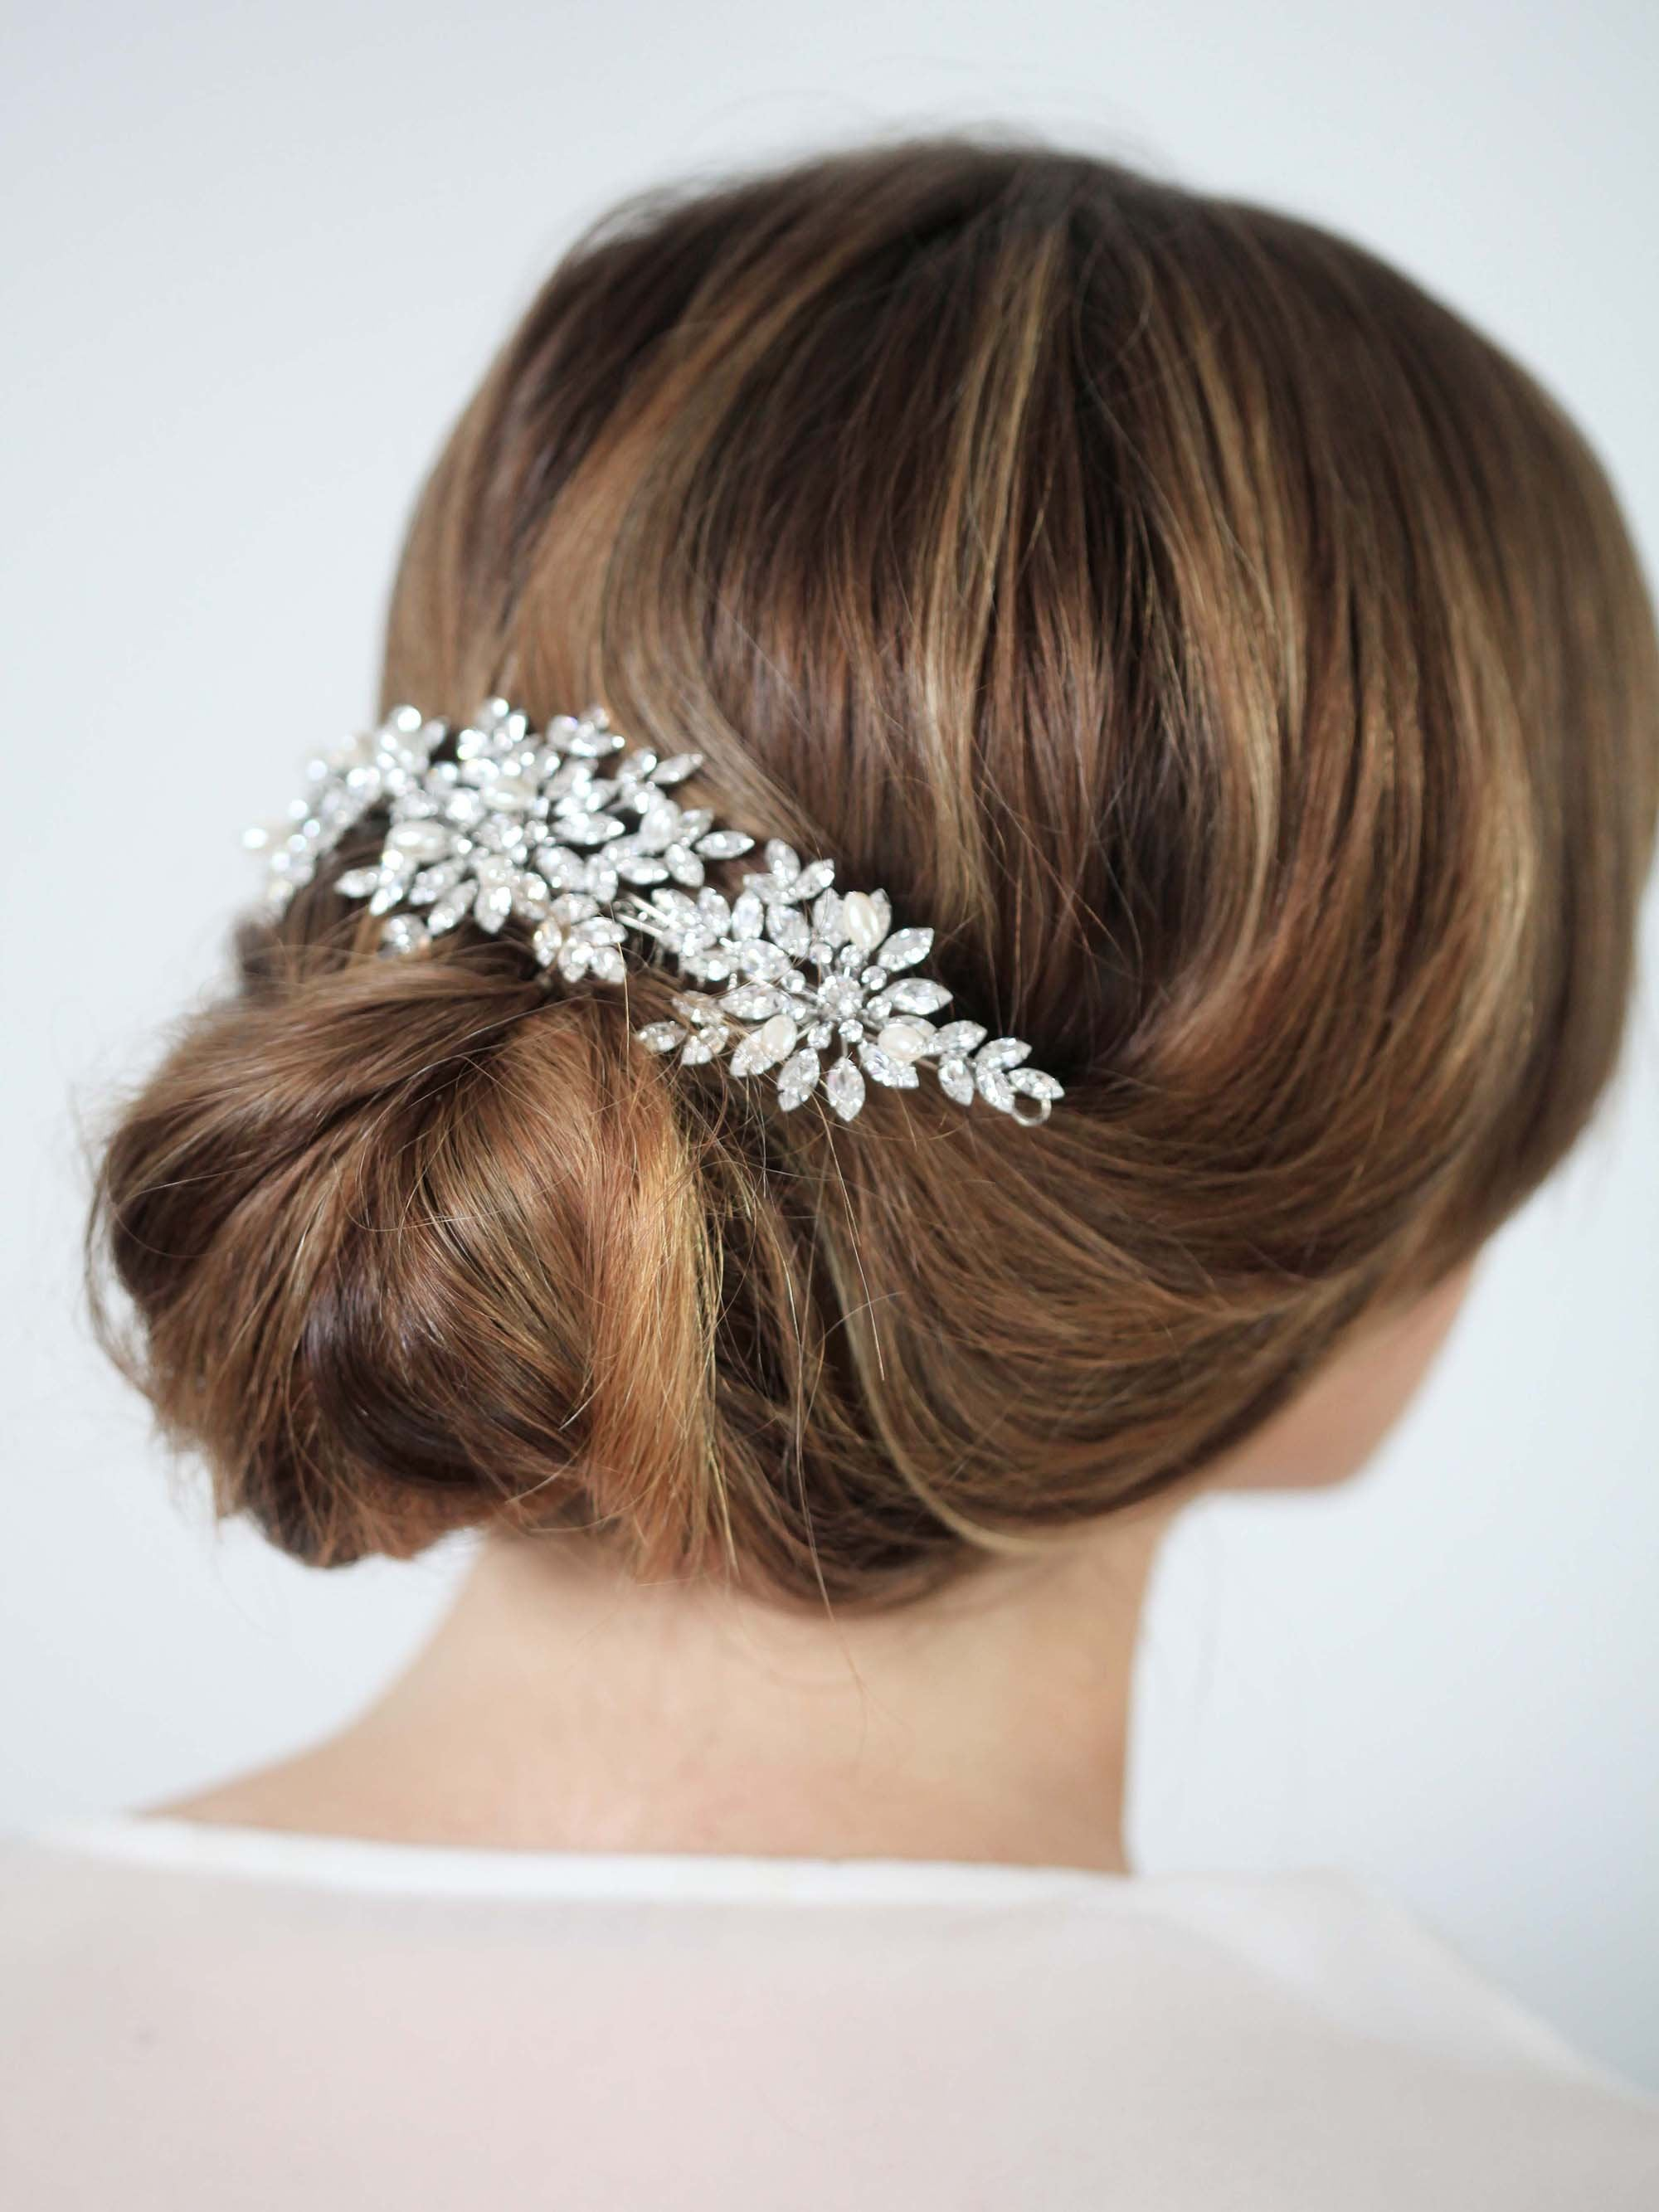 Rent Bridal Hair Accessories - Jasmine Pearl Band - Happily Ever Borrowed